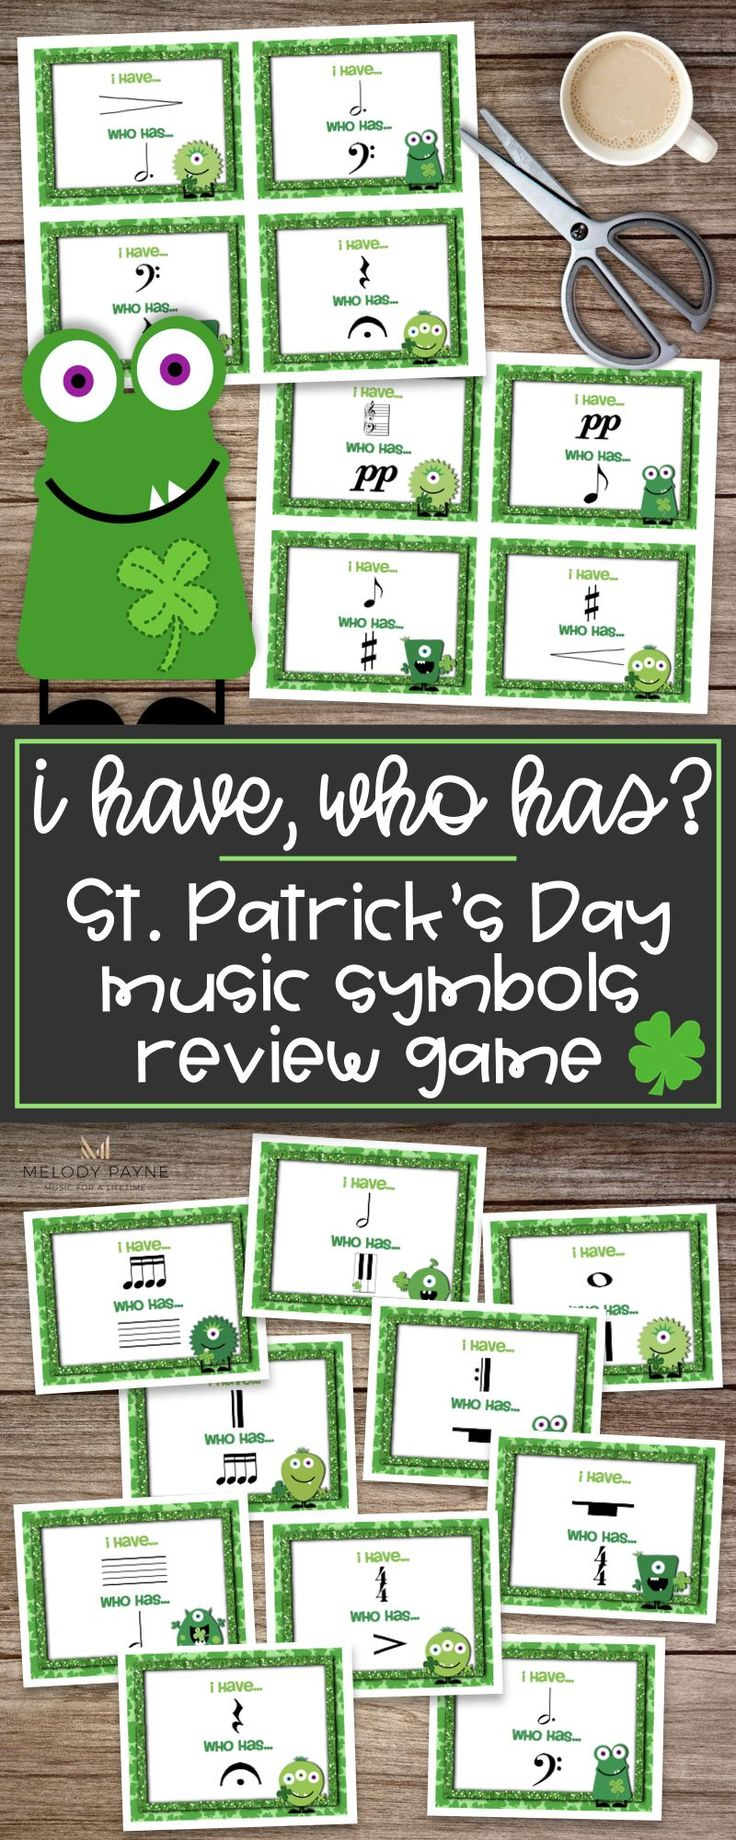 Best 25 music symbols ideas on pinterest music notes music st patricks day monsters music symbols game 46 symbols biocorpaavc